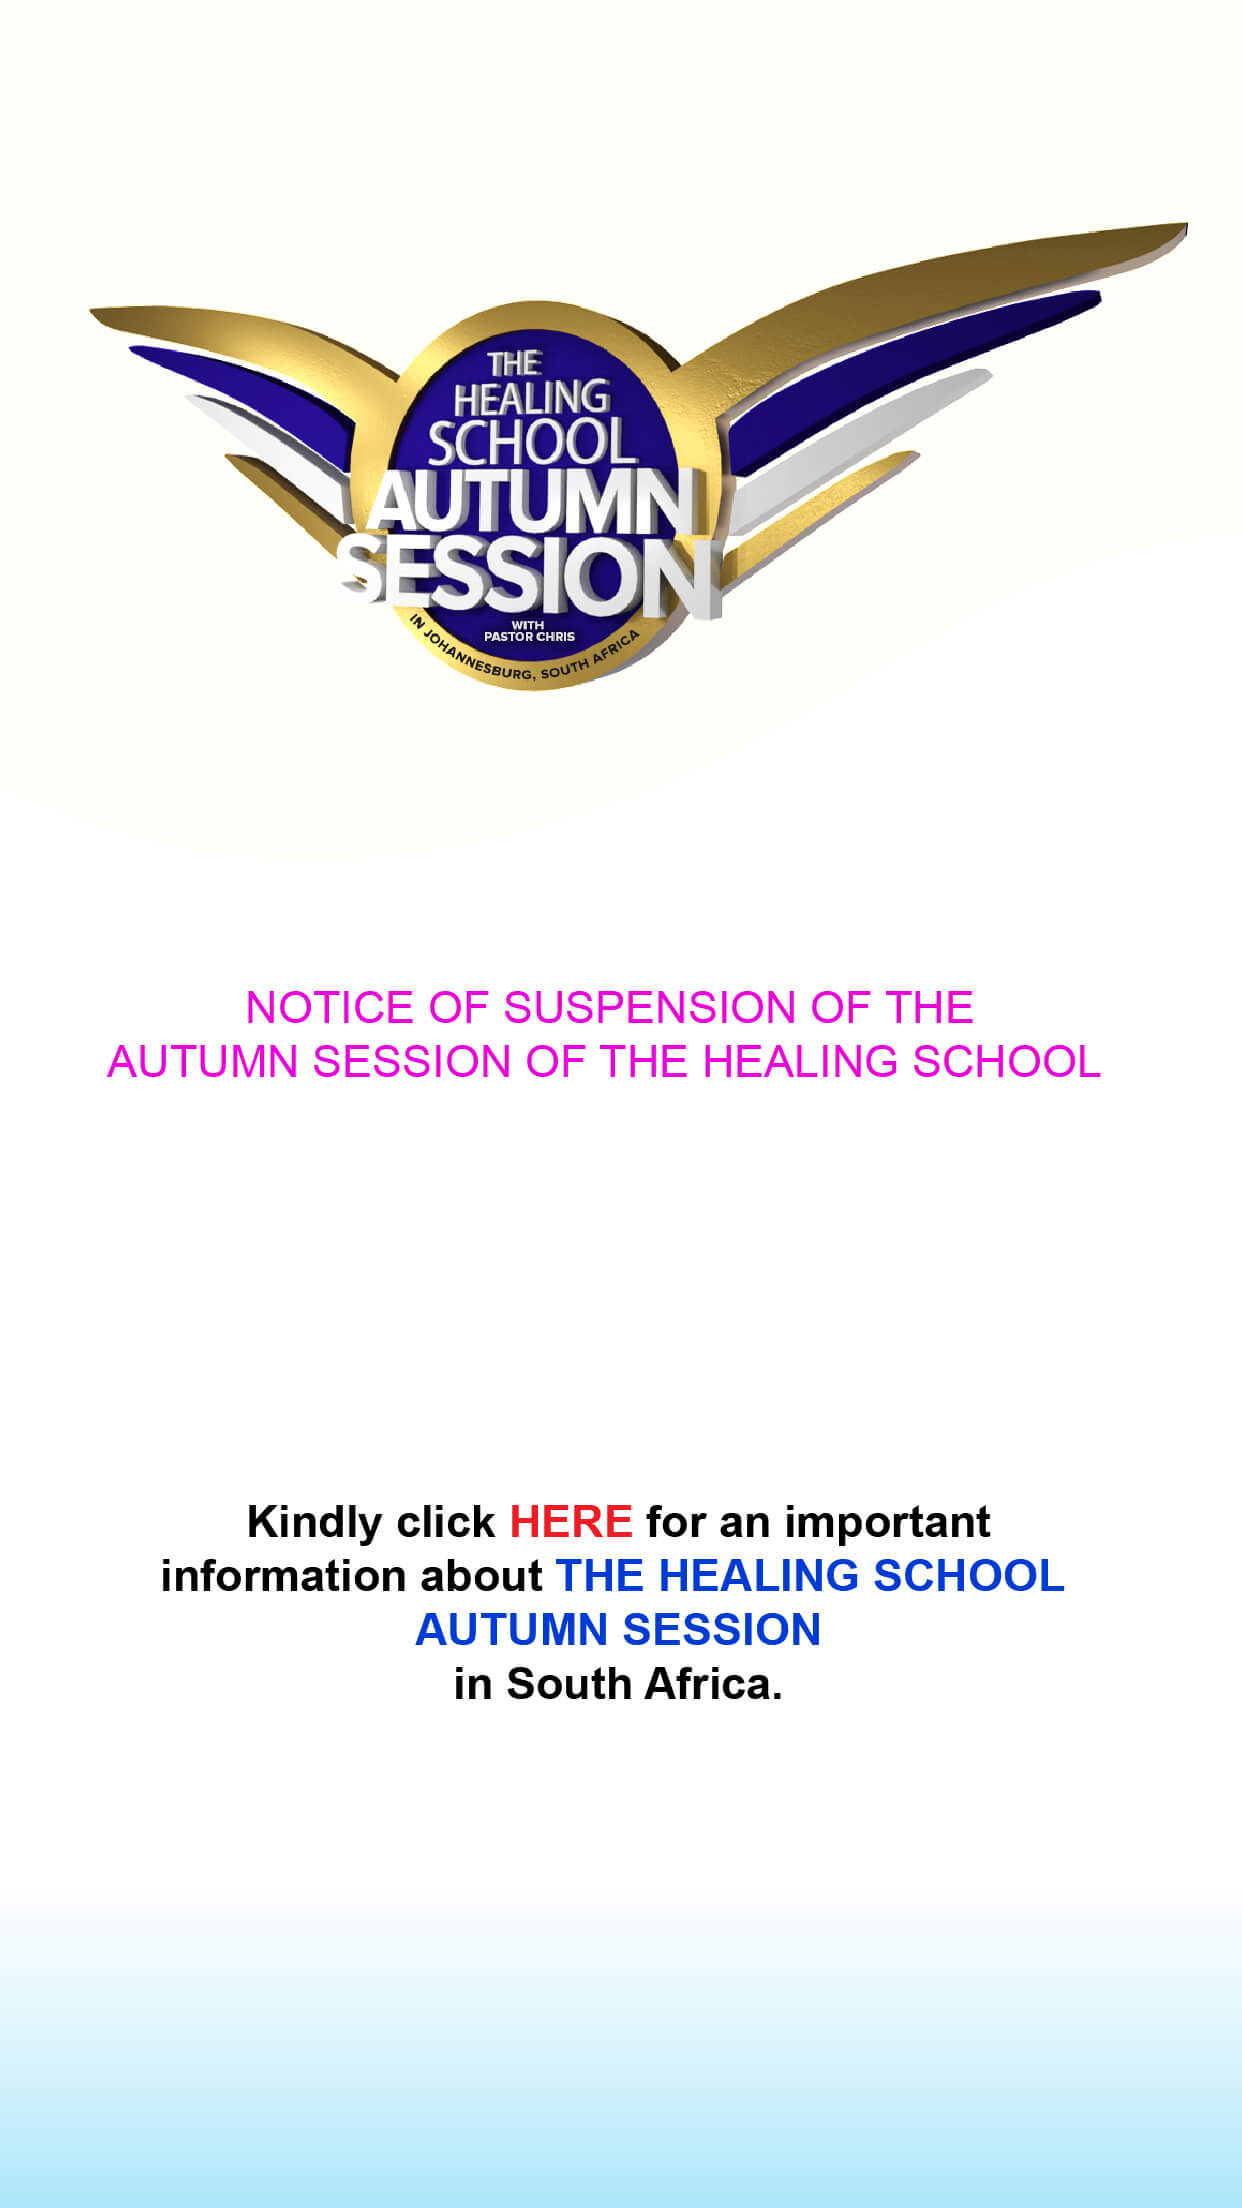 NOTICE OF SUSPENSION OF THE AUTUMN SESSION OF THE HEALING SCHOOL